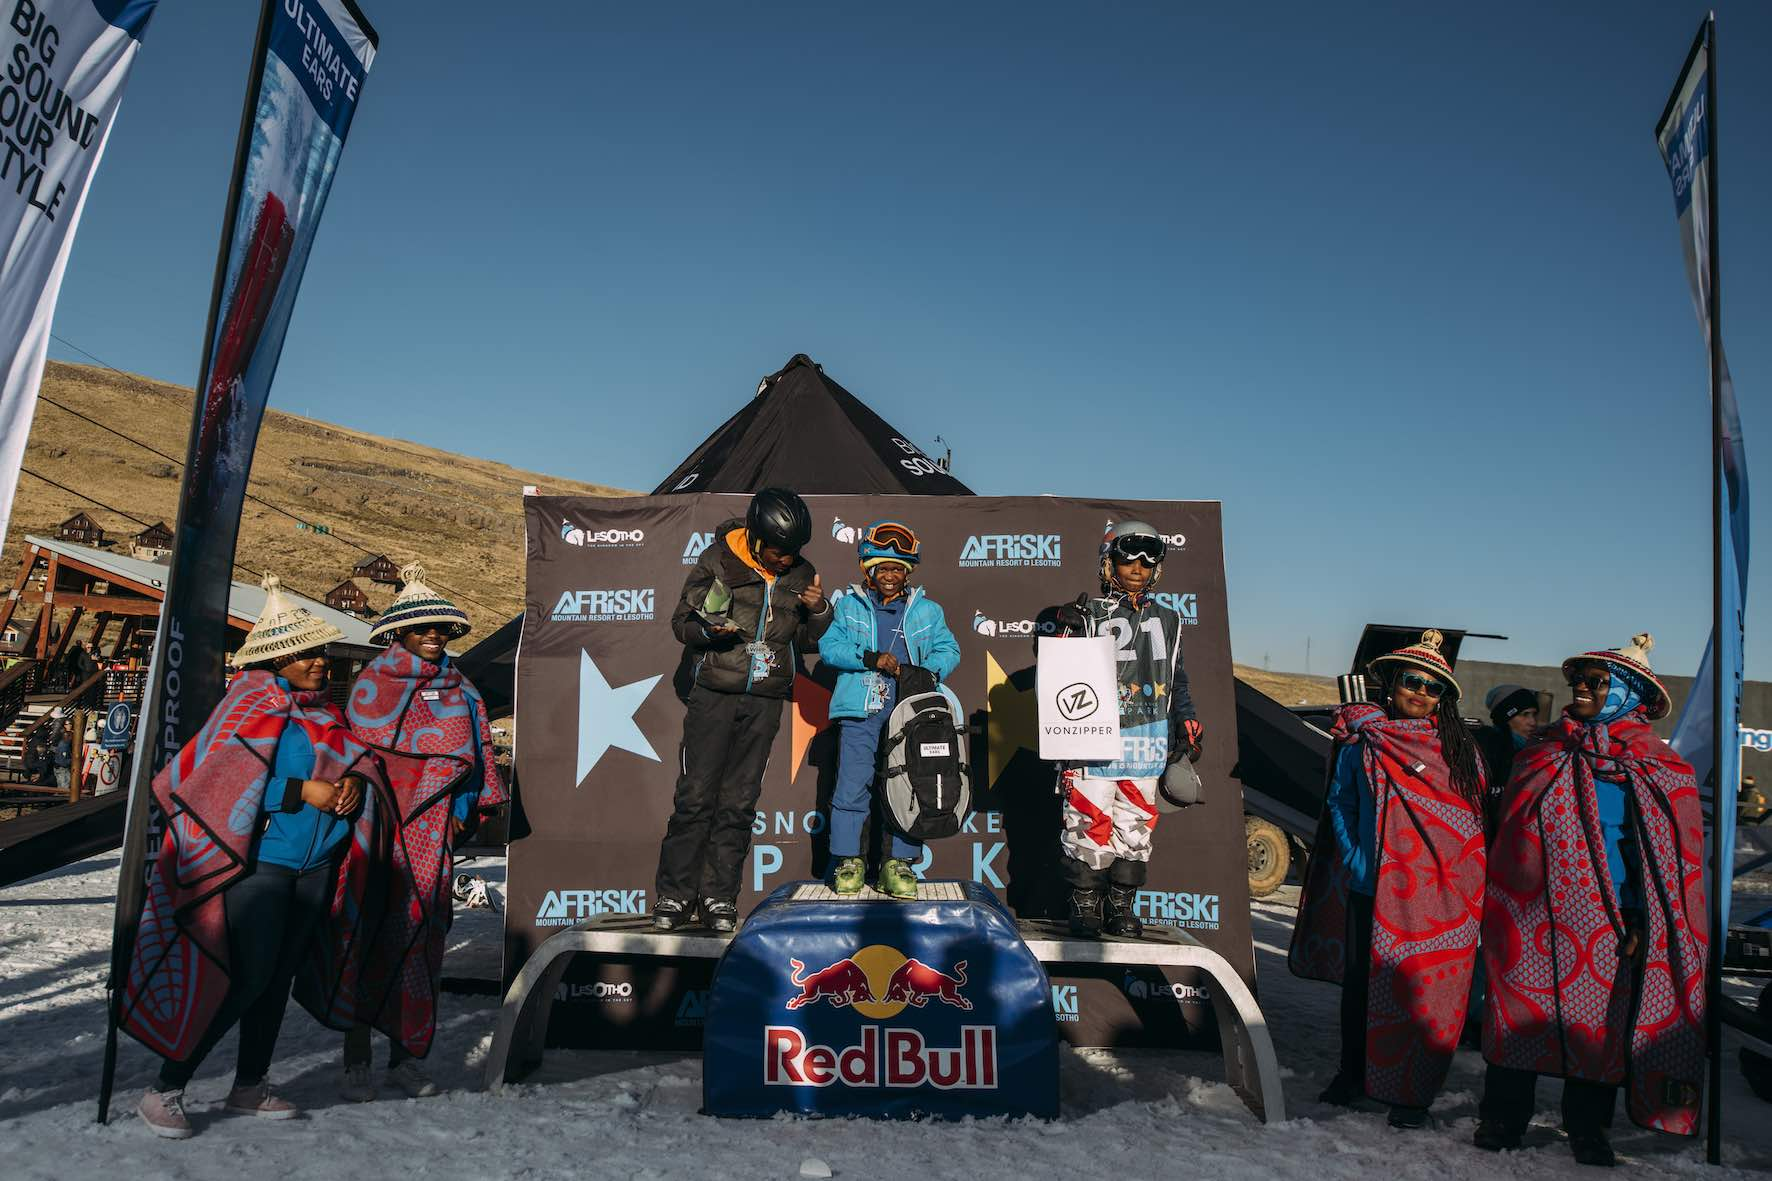 Junior Ski podium at the 2019 Ultimate Ears Winter Whip Snowboard and Ski Festival